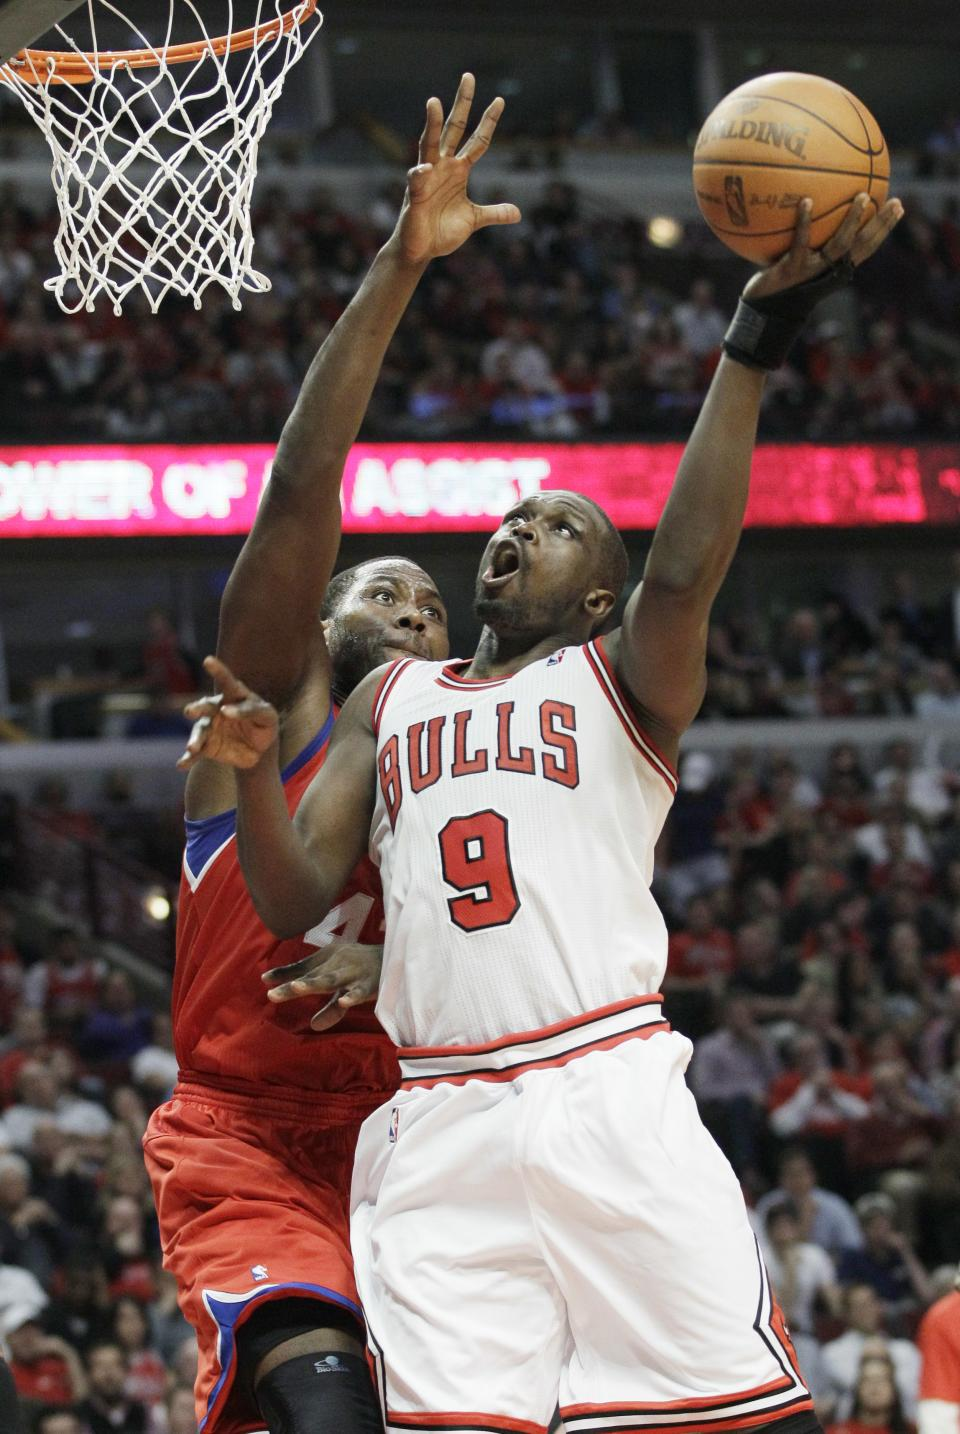 Chicago Bulls forward Luol Deng (9) shoots against Philadelphia 76ers forward Elton Brand (42) during the fourth quarter of Game 5 in an NBA basketball first-round playoff series, in Chicago on Tuesday, May 8, 2012. The Bulls won 77-69. (AP Photo/Nam Y. Huh)